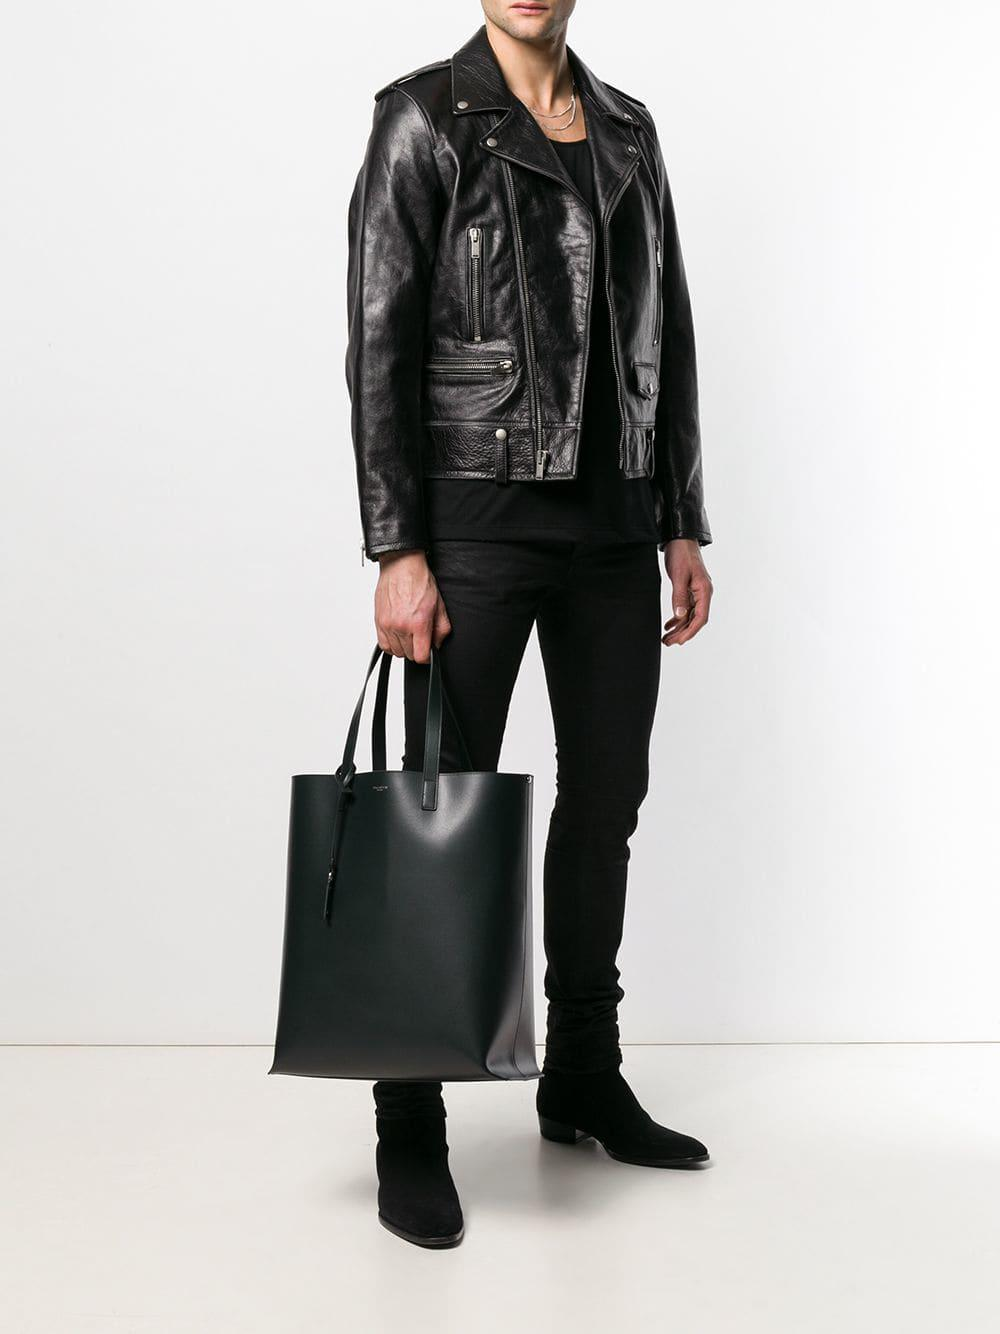 65e5bc23a1f Lyst - Saint Laurent Logo Tote Bag in Black for Men